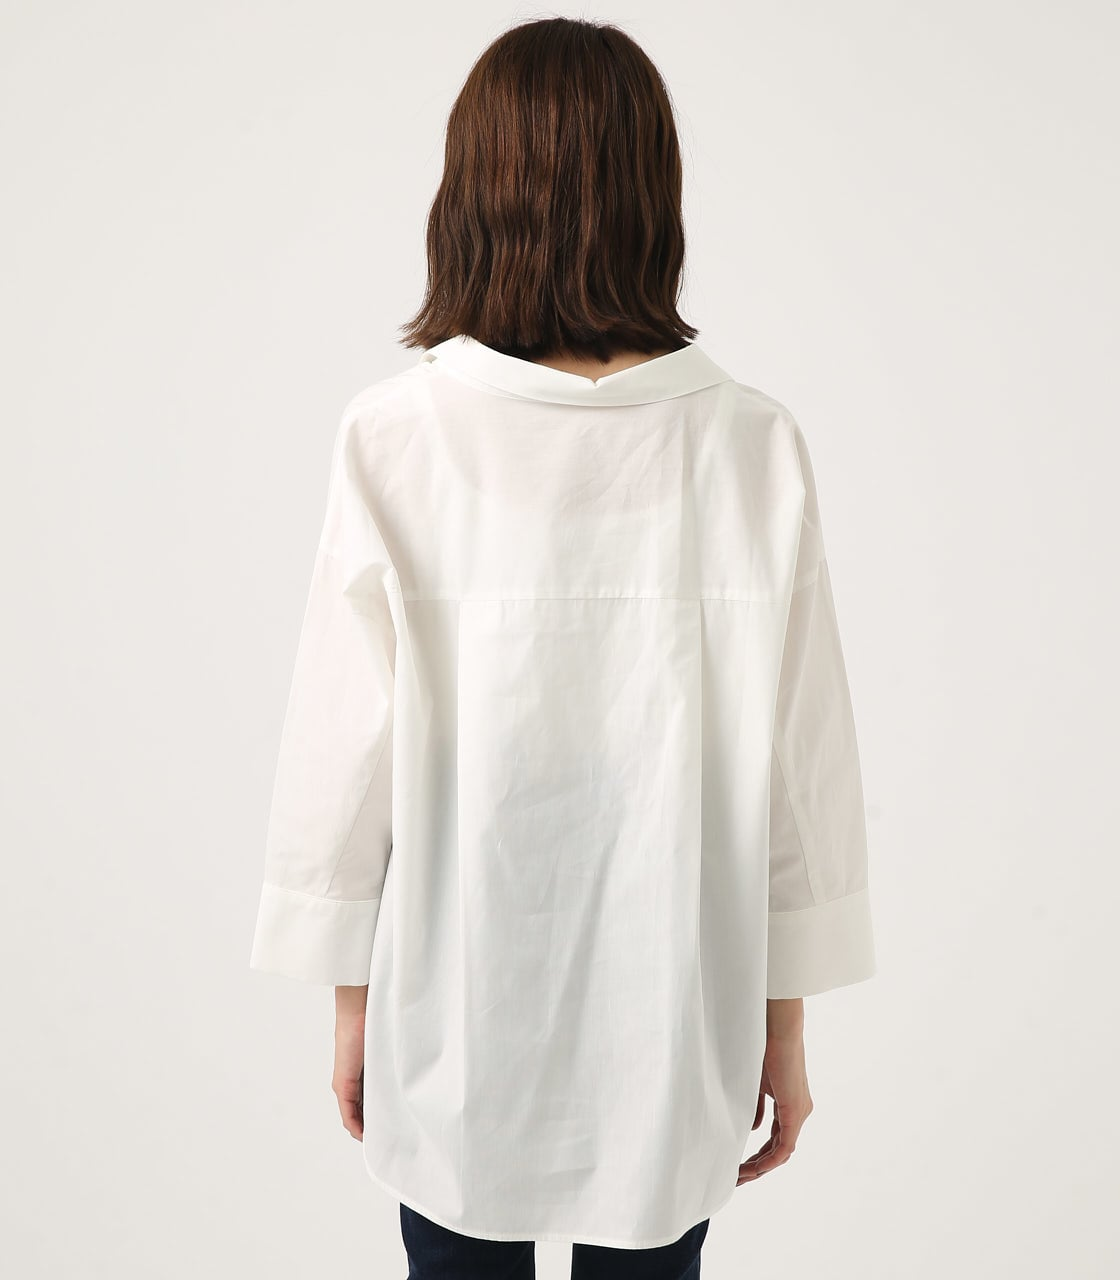 【AZUL BY MOUSSY】LOOSE SKIPPER SHIRT 詳細画像 O/WHT 6